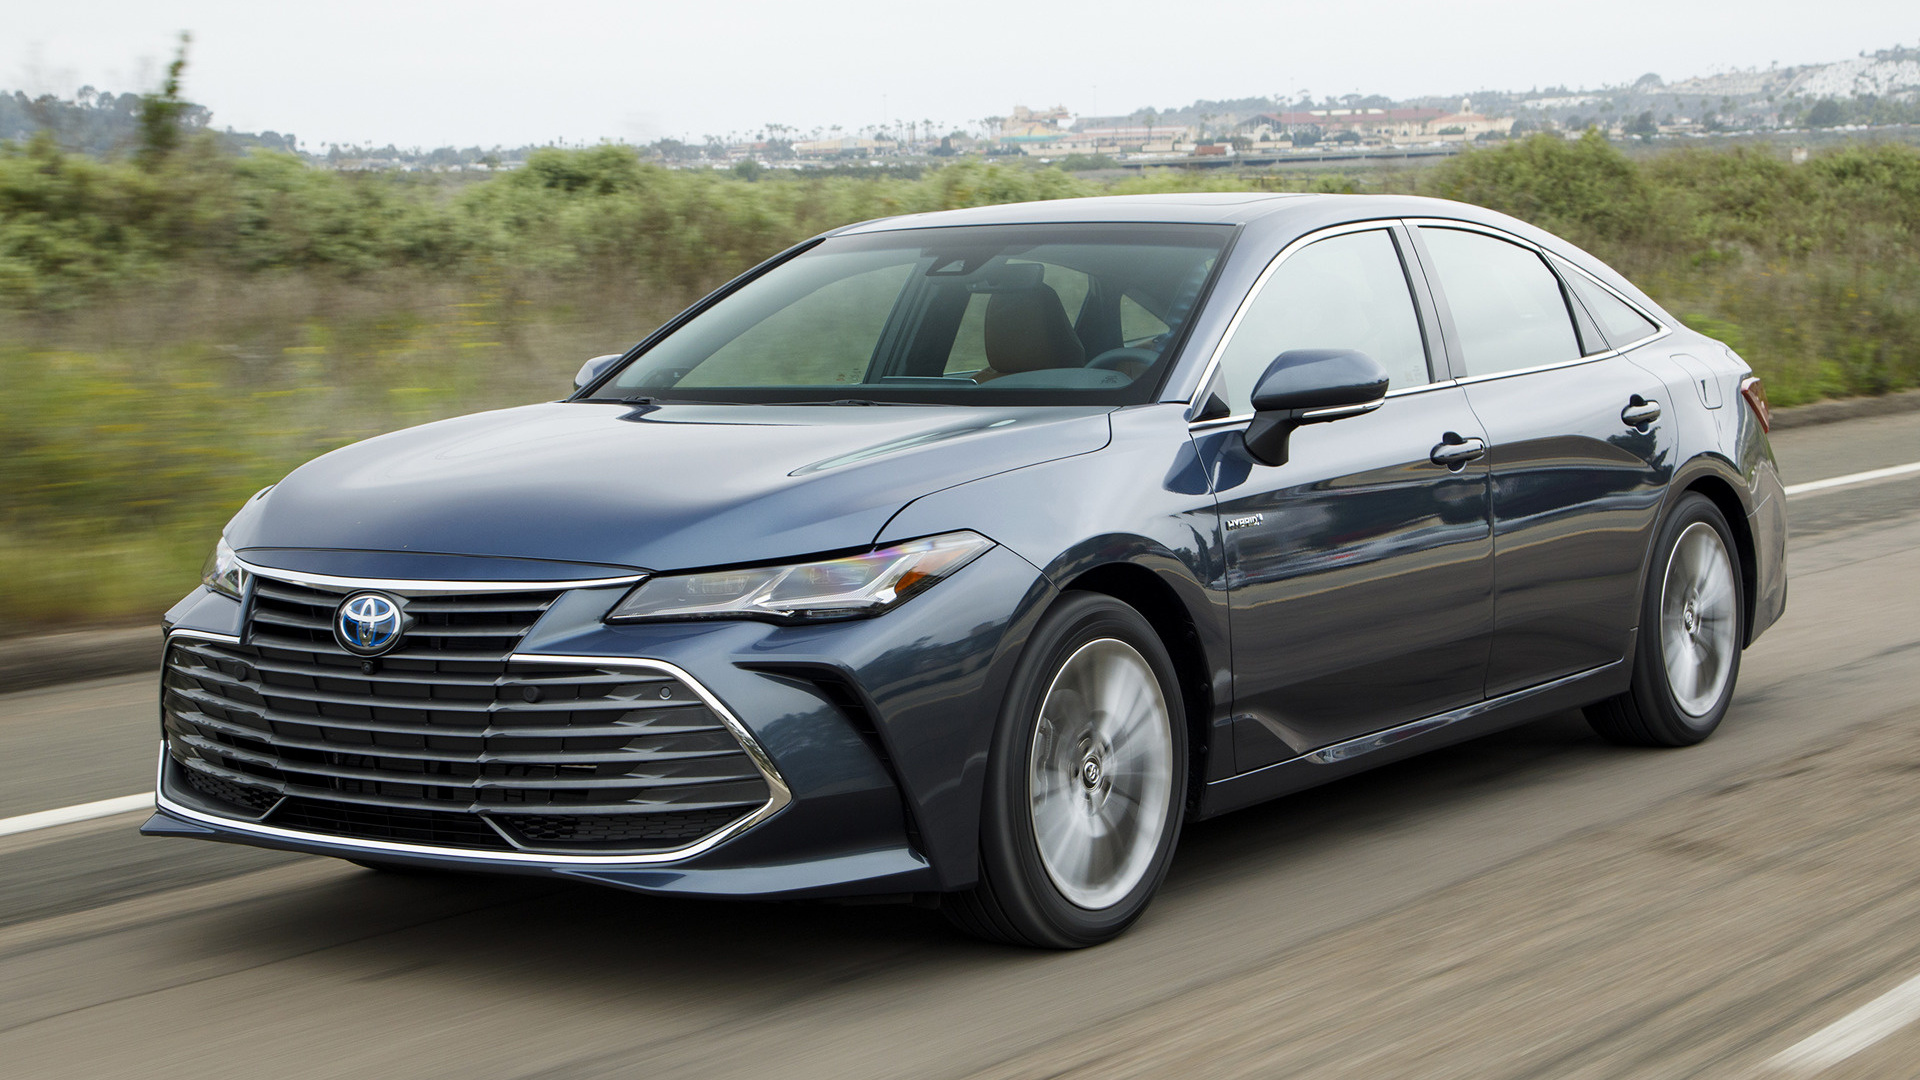 2019 toyota avalon hybrid wallpapers and hd images car. Black Bedroom Furniture Sets. Home Design Ideas